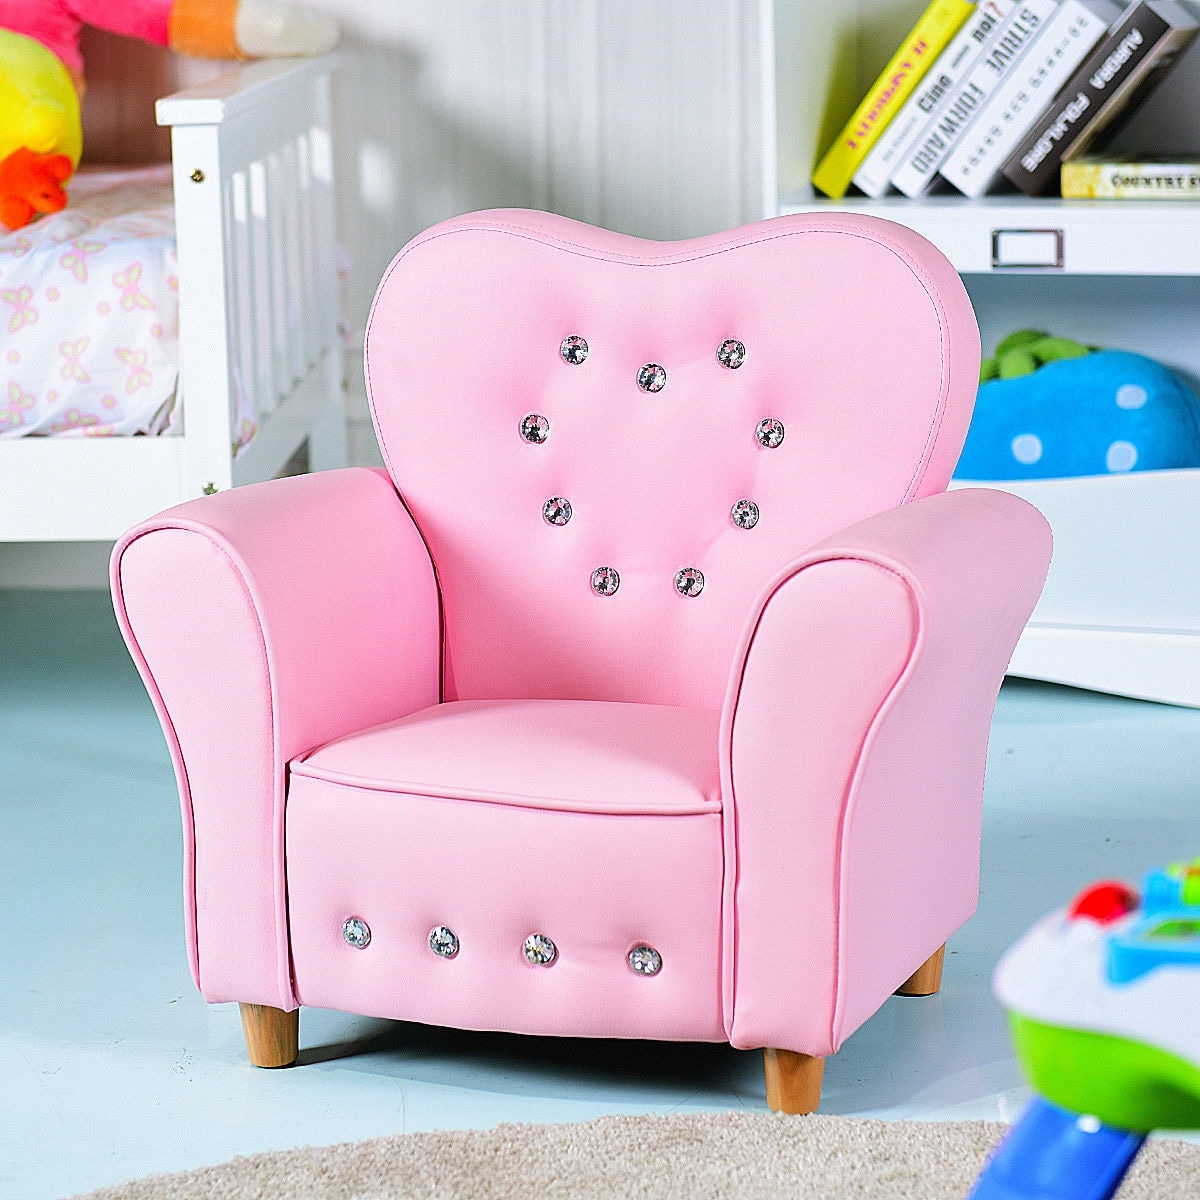 pink kids chair cheap lounge chairs for living room shop gymax teen sofa armrest couch children toddler birthday gift girls